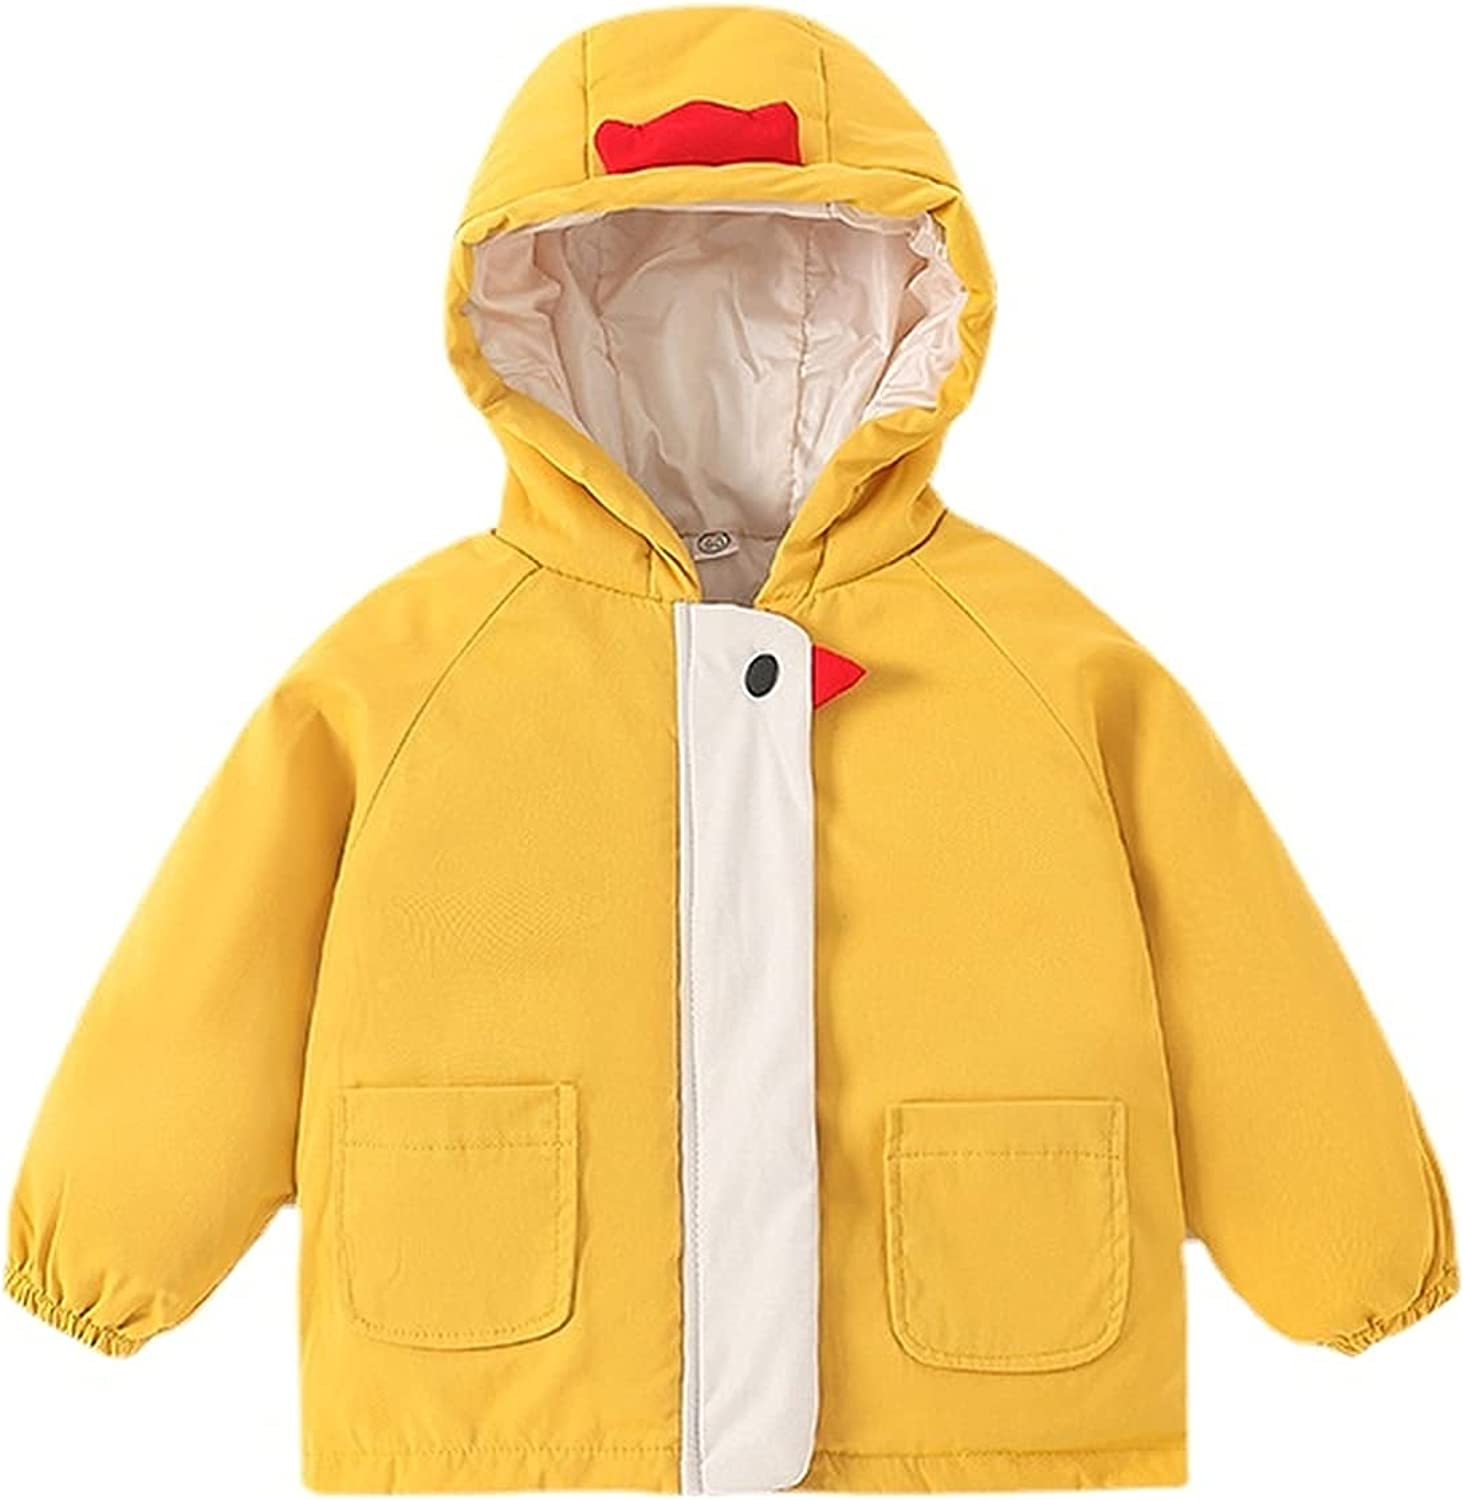 Hooded Down Alternative Solid Color Toddler Cotton Jacket for Boys and Girls Windproof thick warm light jacket